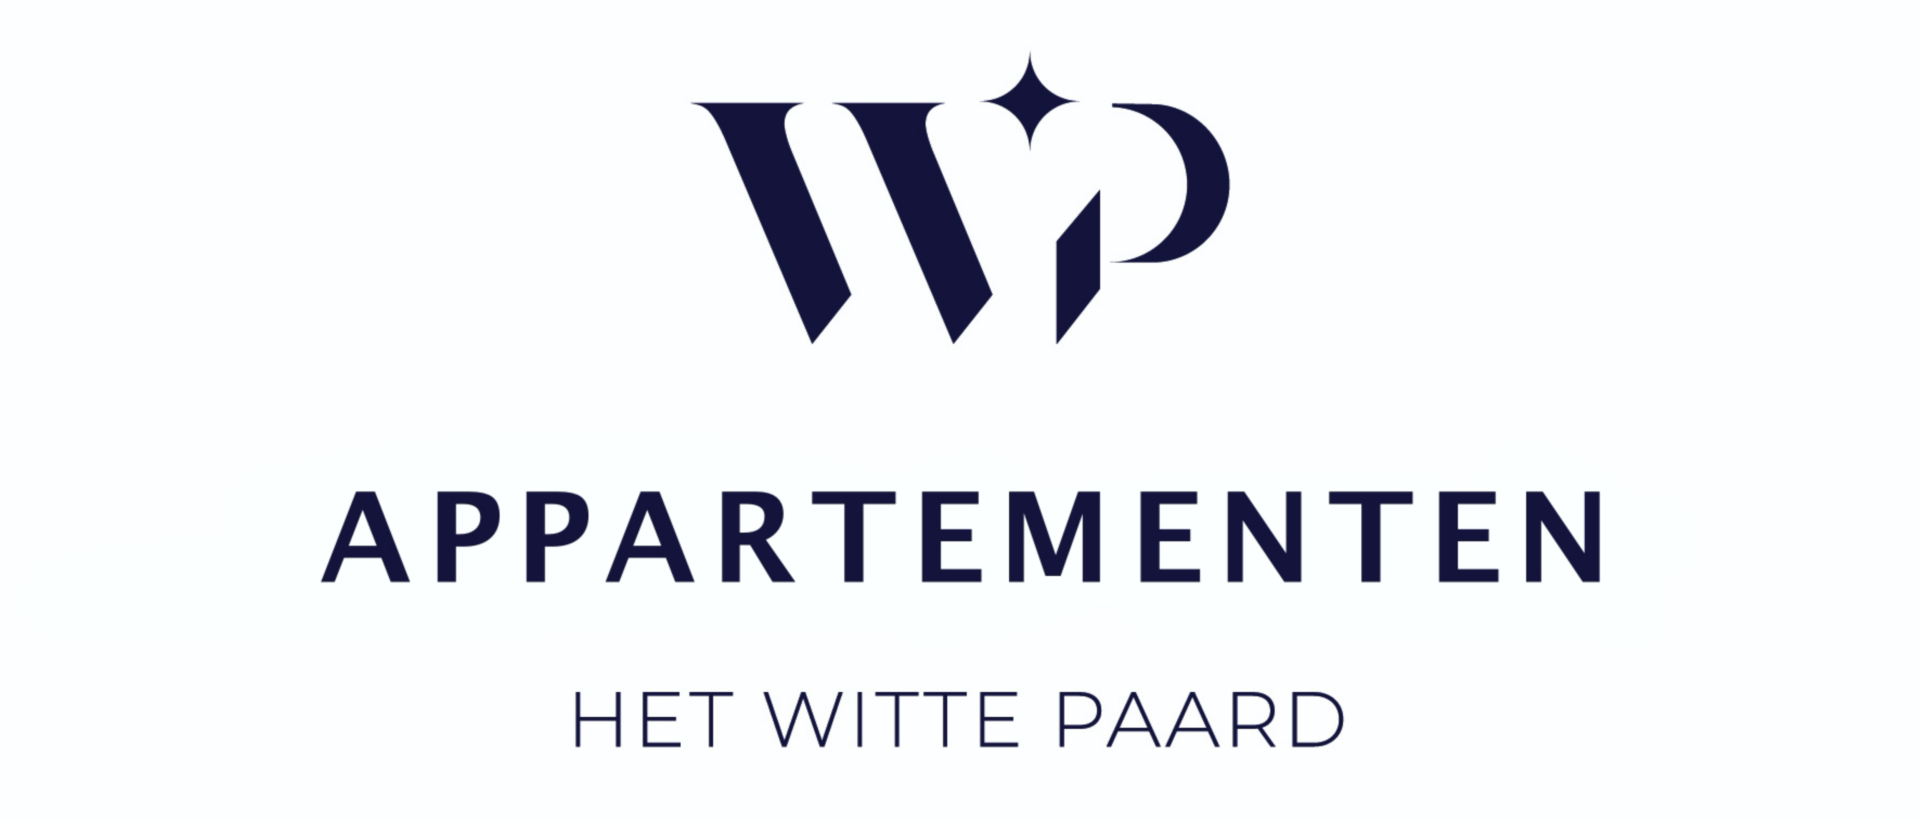 WP APPARTEMENTEN LOGO long